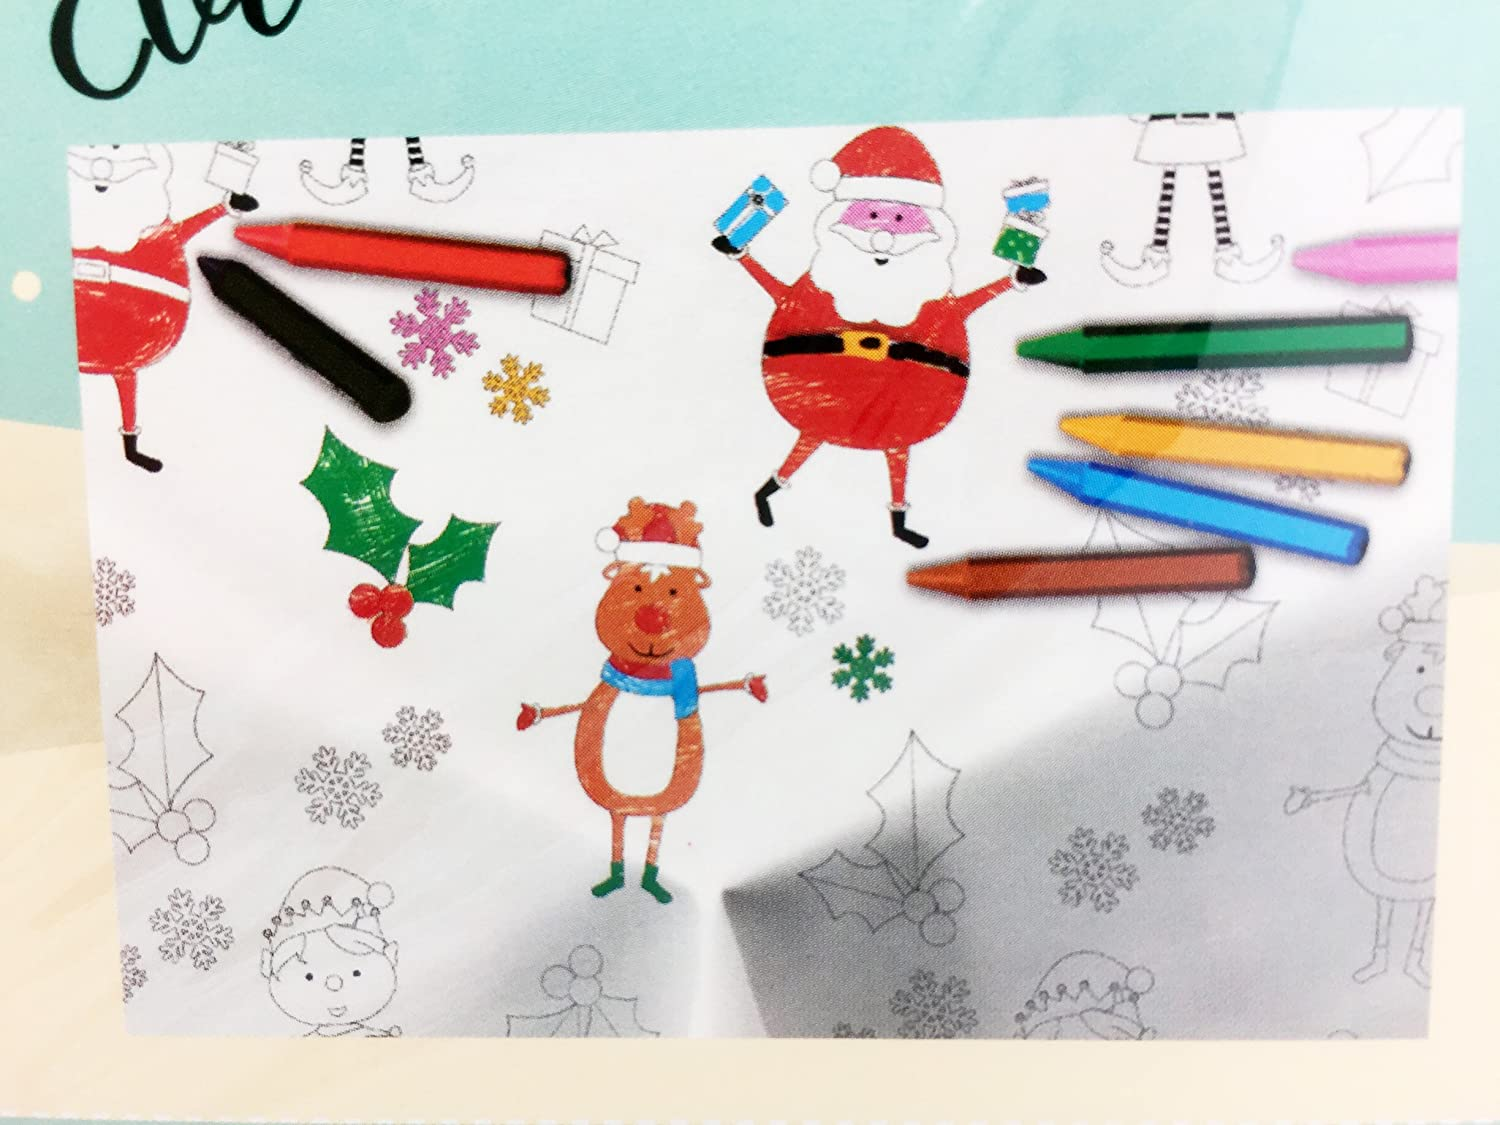 Colour Your Own: Christmas Table Cloth - kids colouring-in activity - Swan household ®